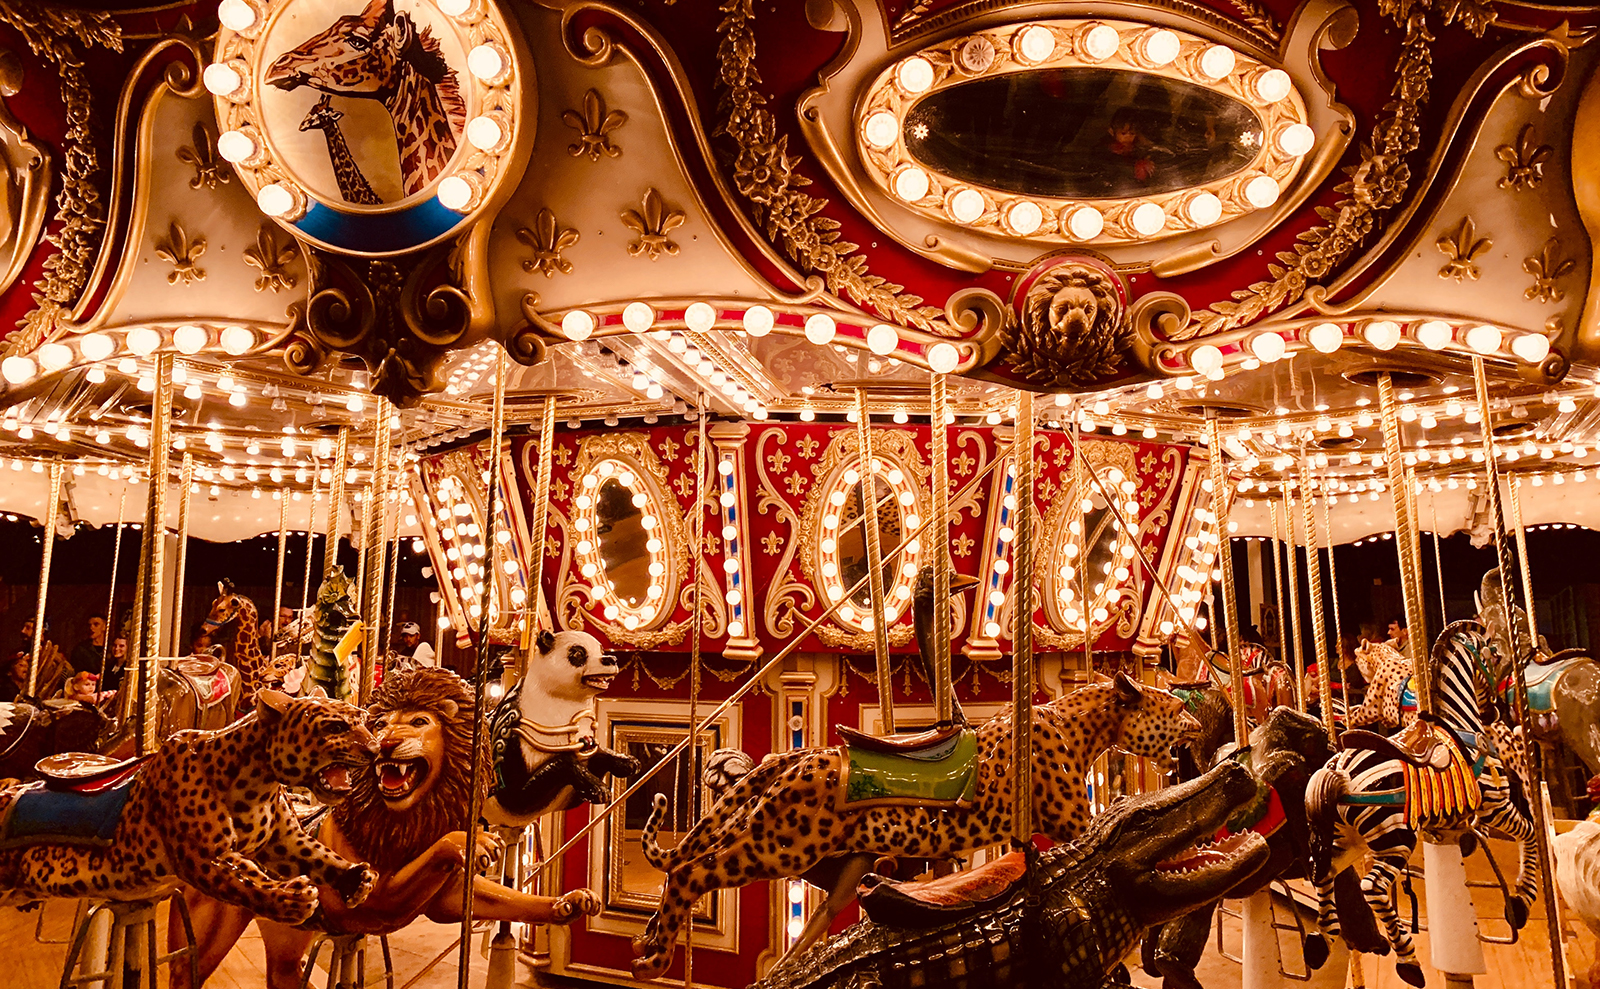 old-fashioned merry-go-round at night